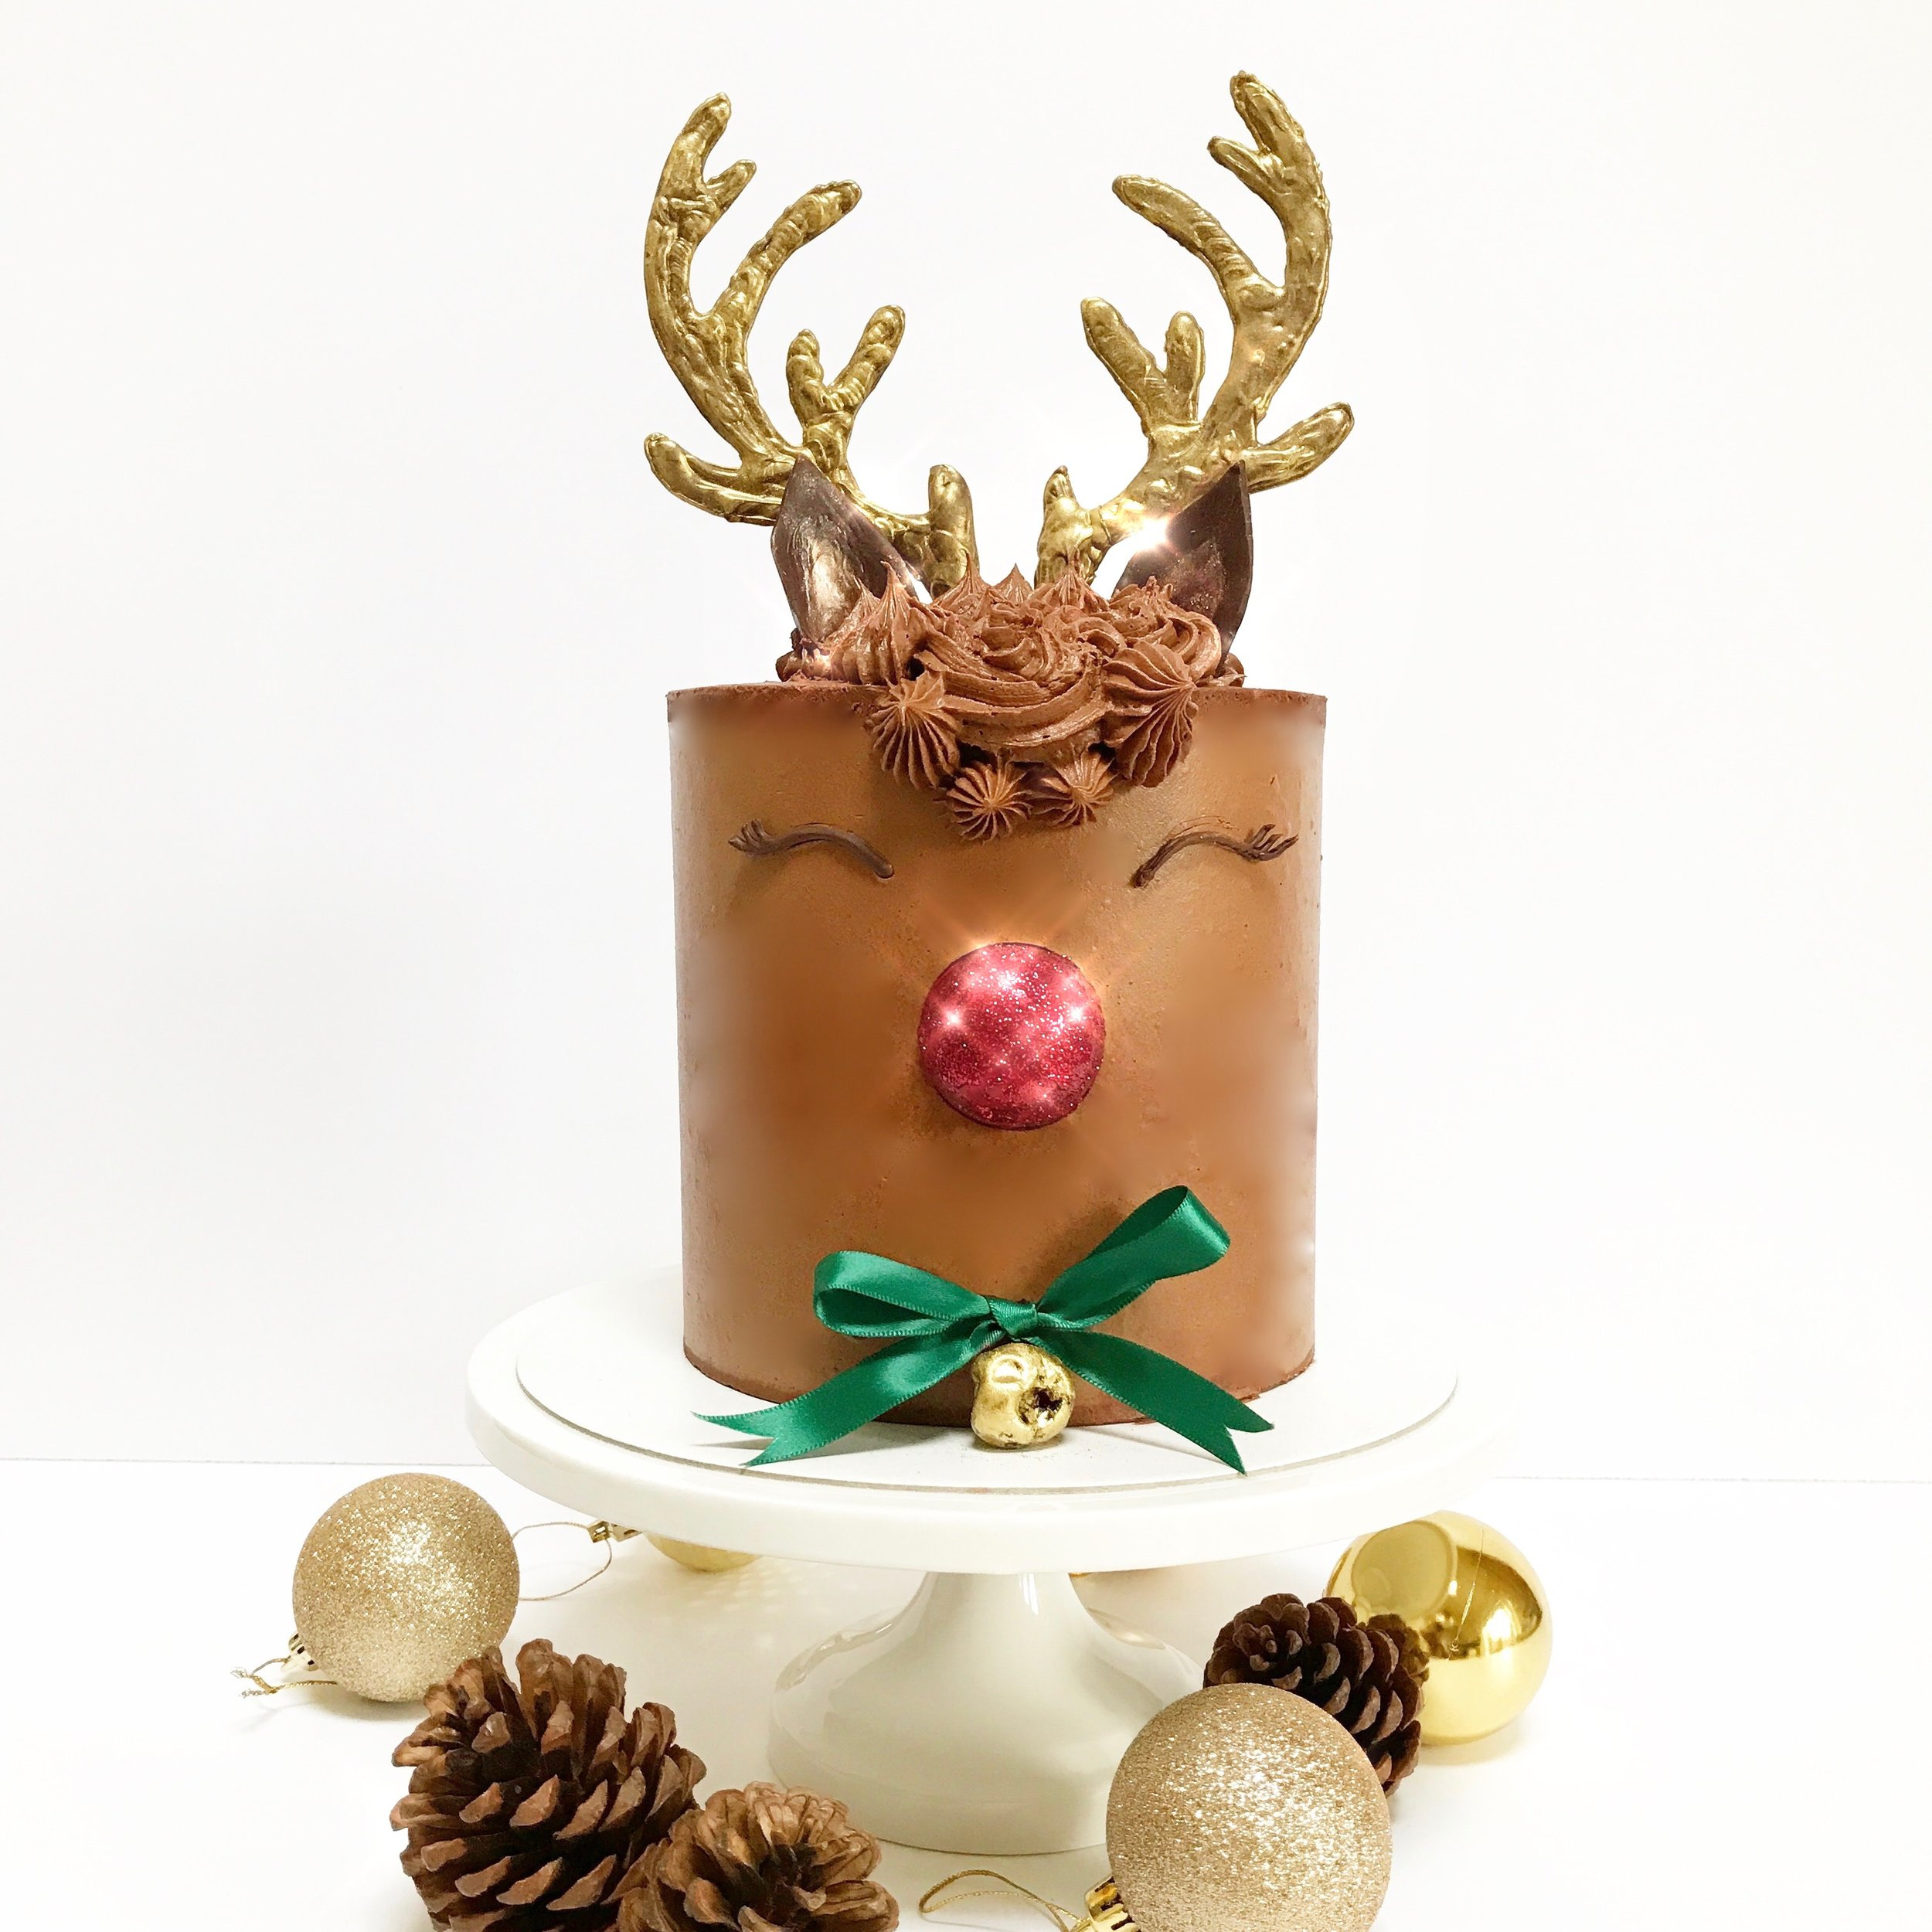 Sparkly nose Rudolph Cake 2.JPG